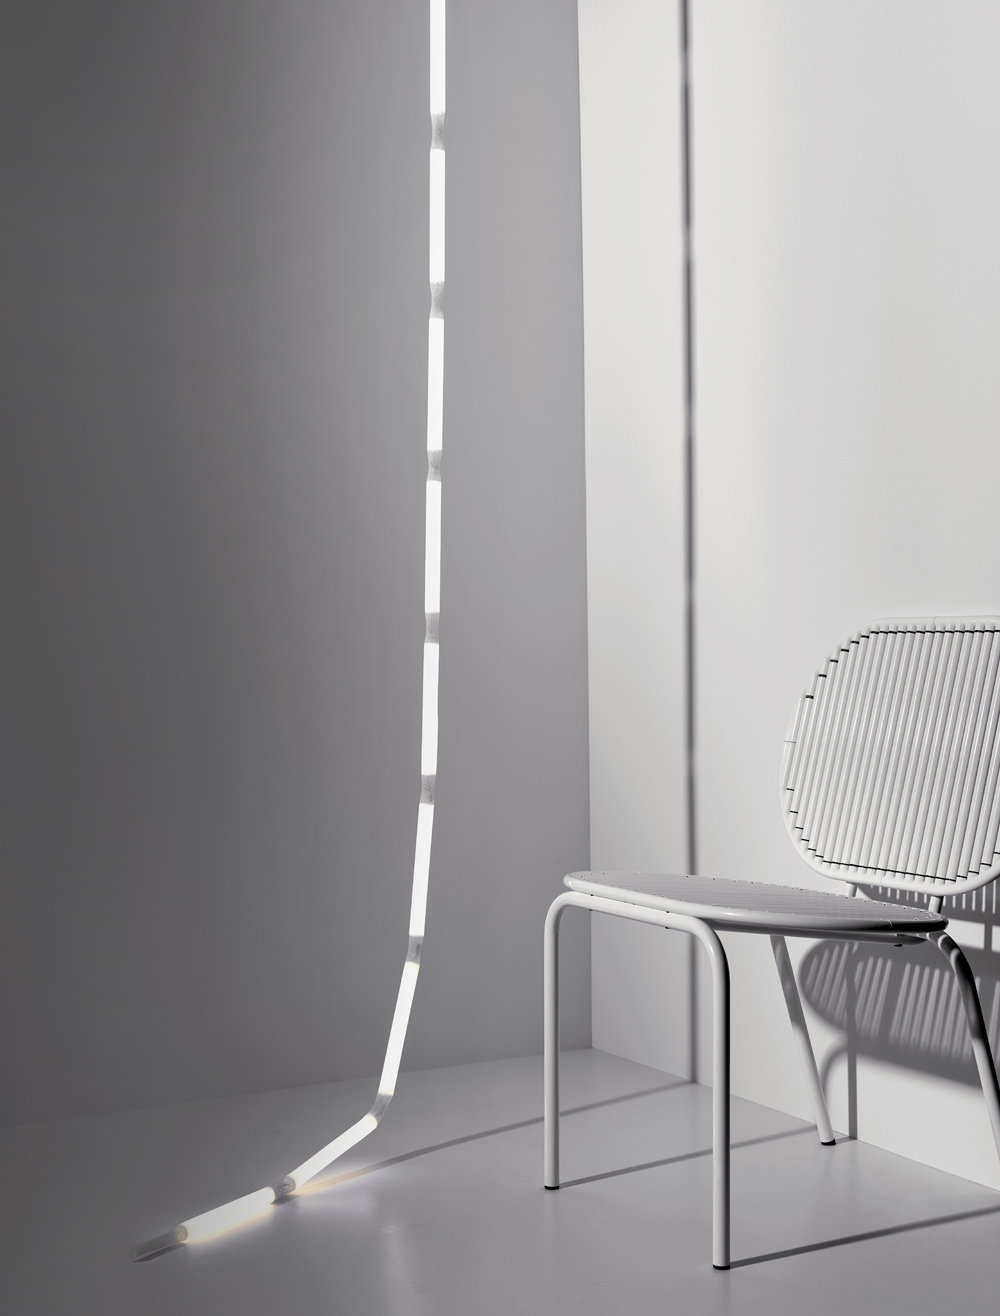 Verena Hennig rope light and Roll chair